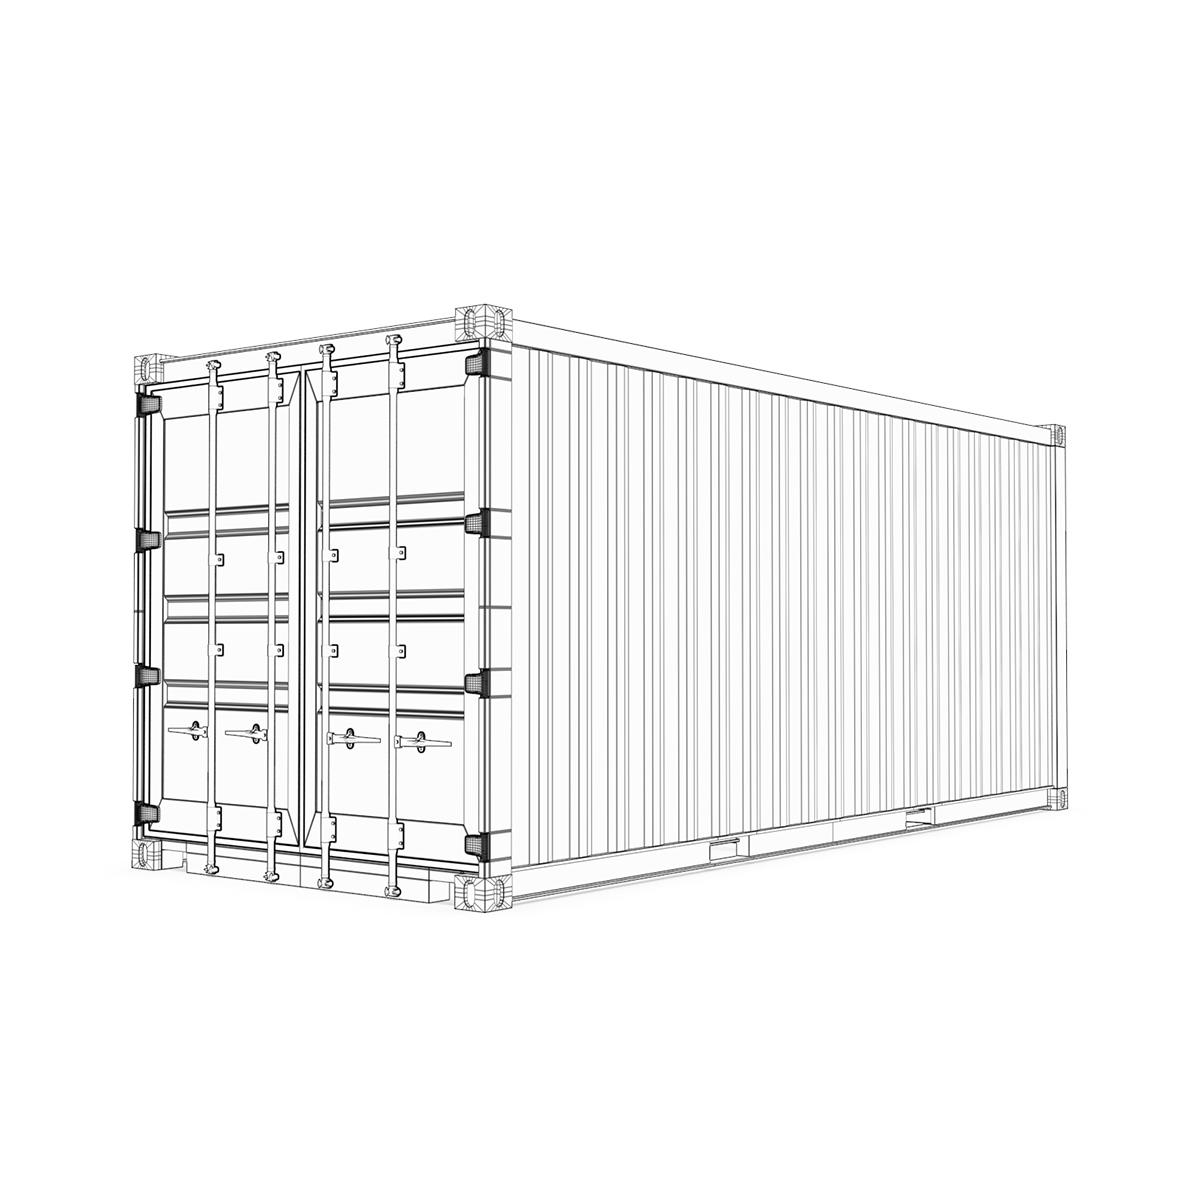 20 feet msc standard shipping container 3d model 3ds max fbx ma mb obj 278387